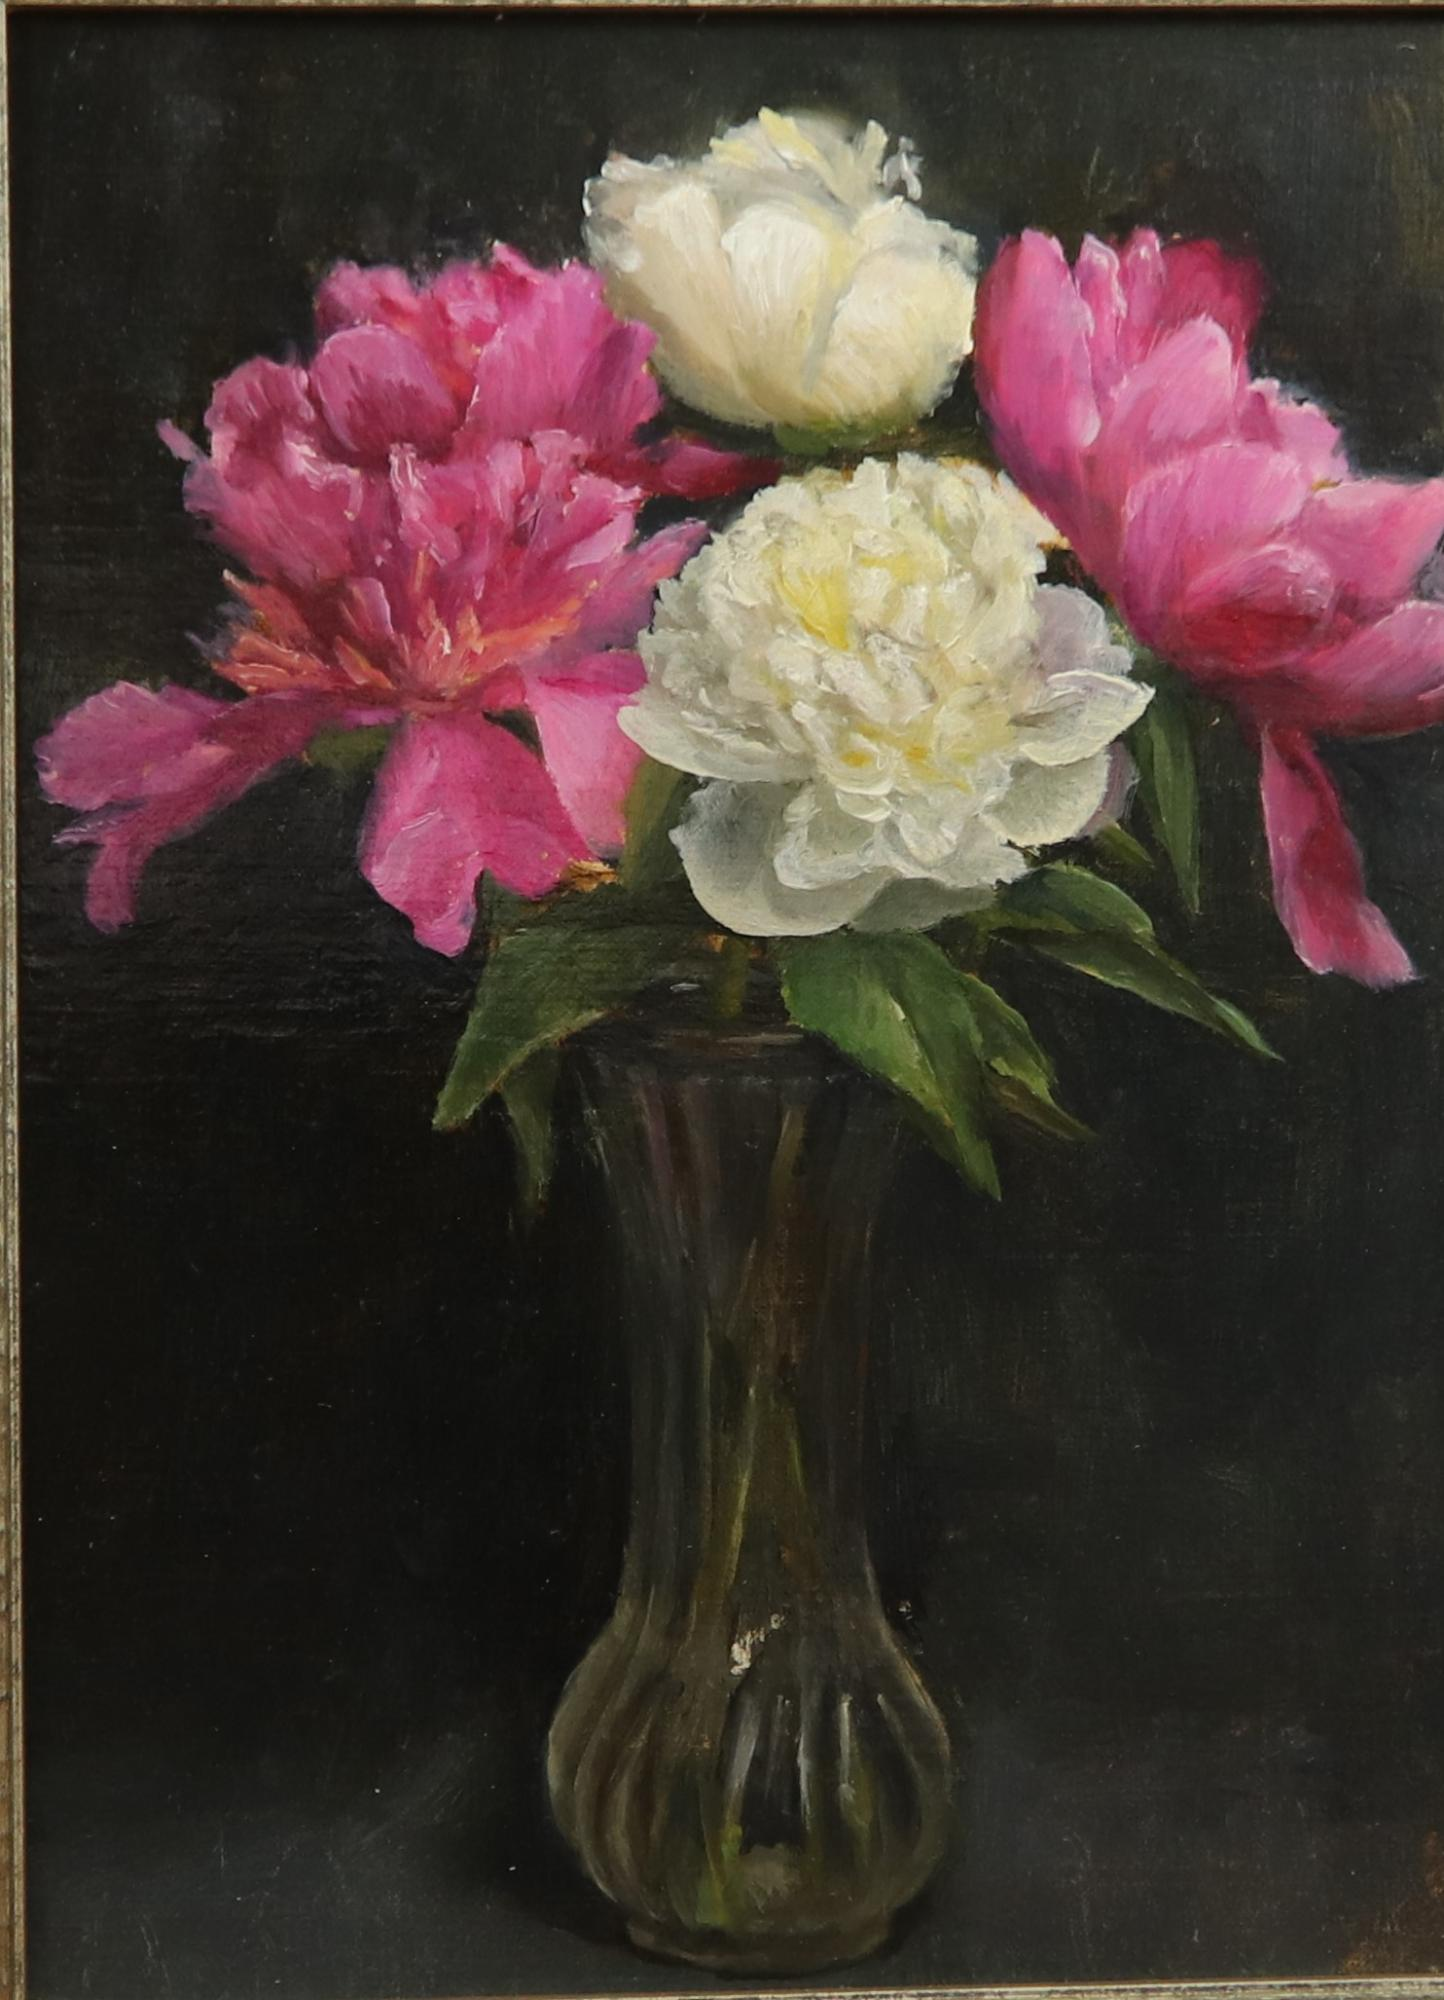 Pink_and_White_Peonies.jpg